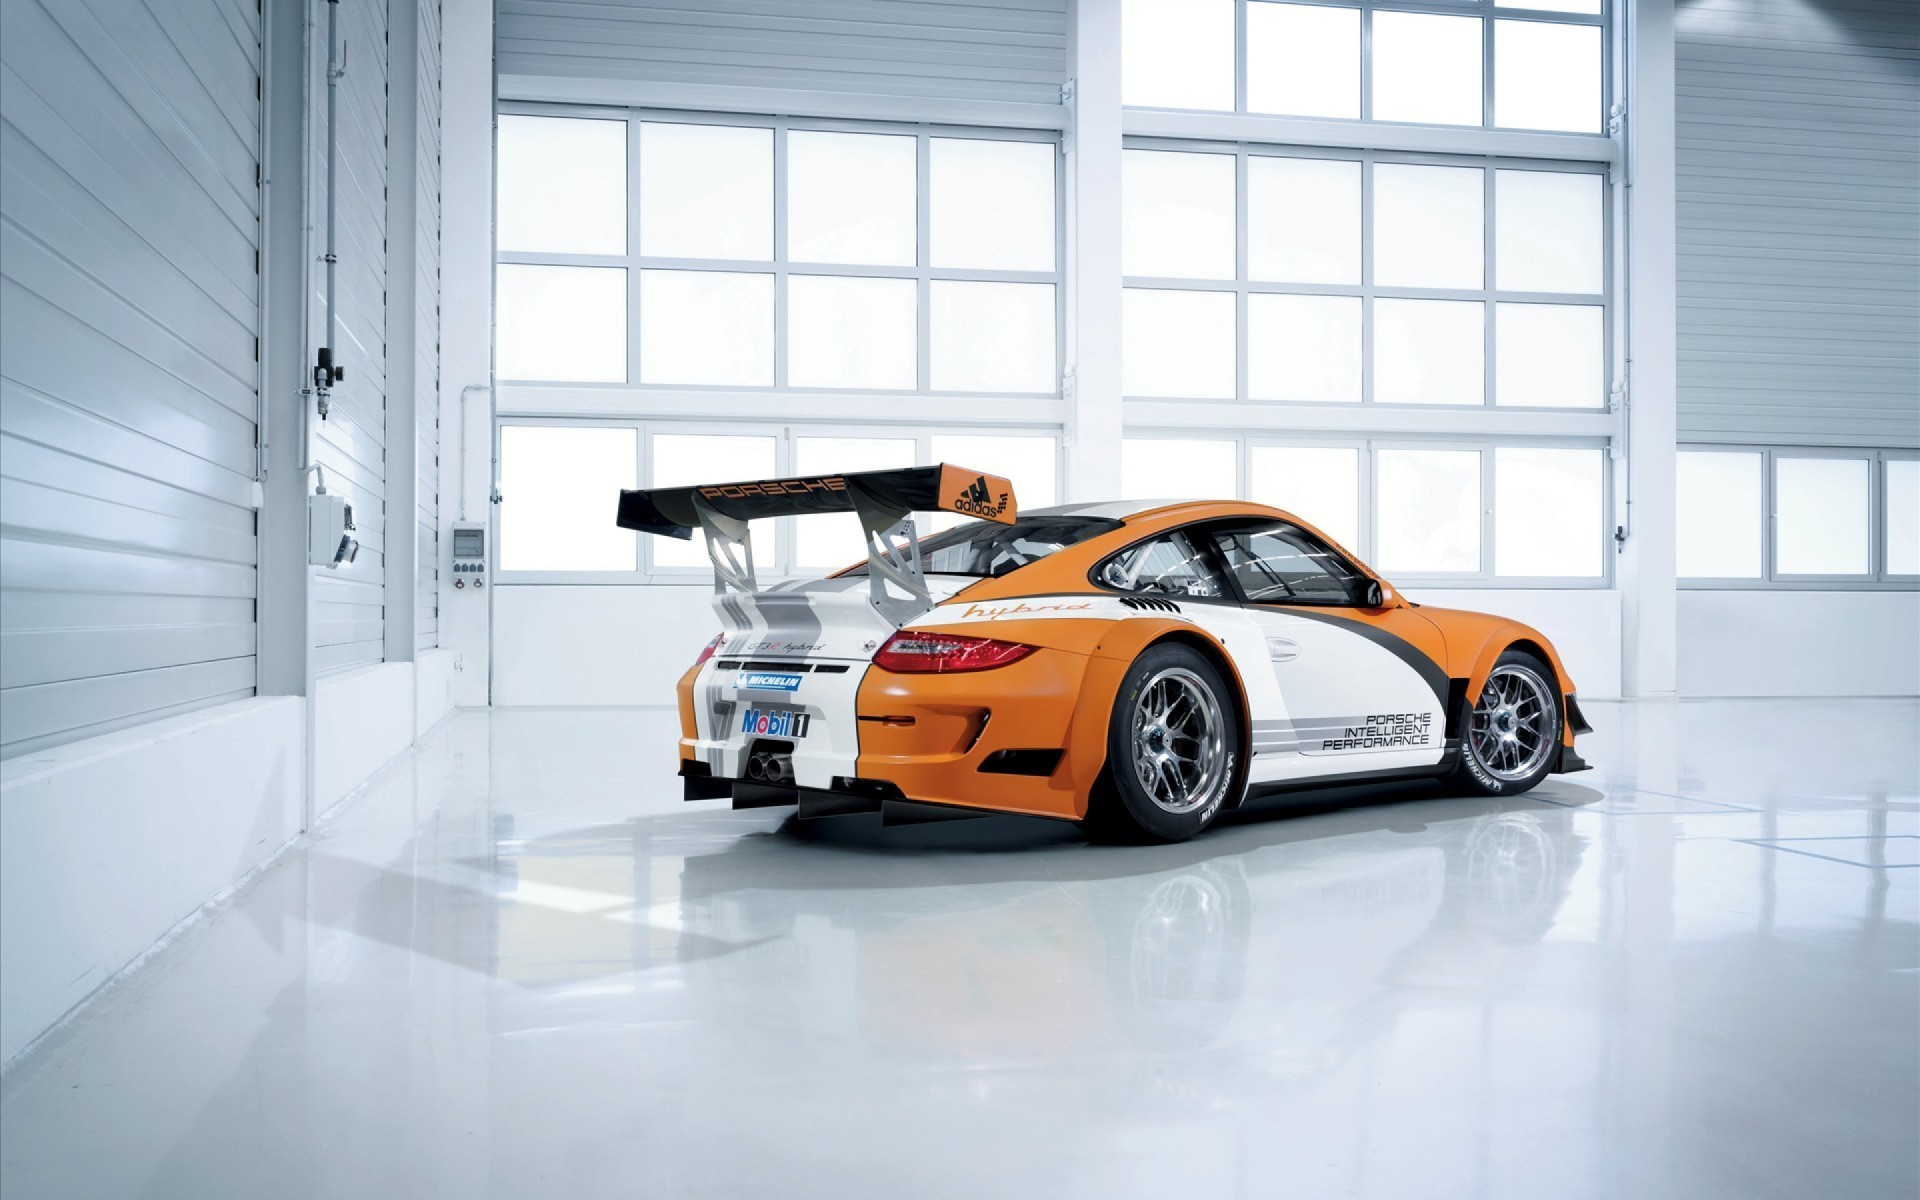 1920x1200 Porsche, Car, Porsche 911, Porsche 911 GT3 Wallpapers HD / Desktop .